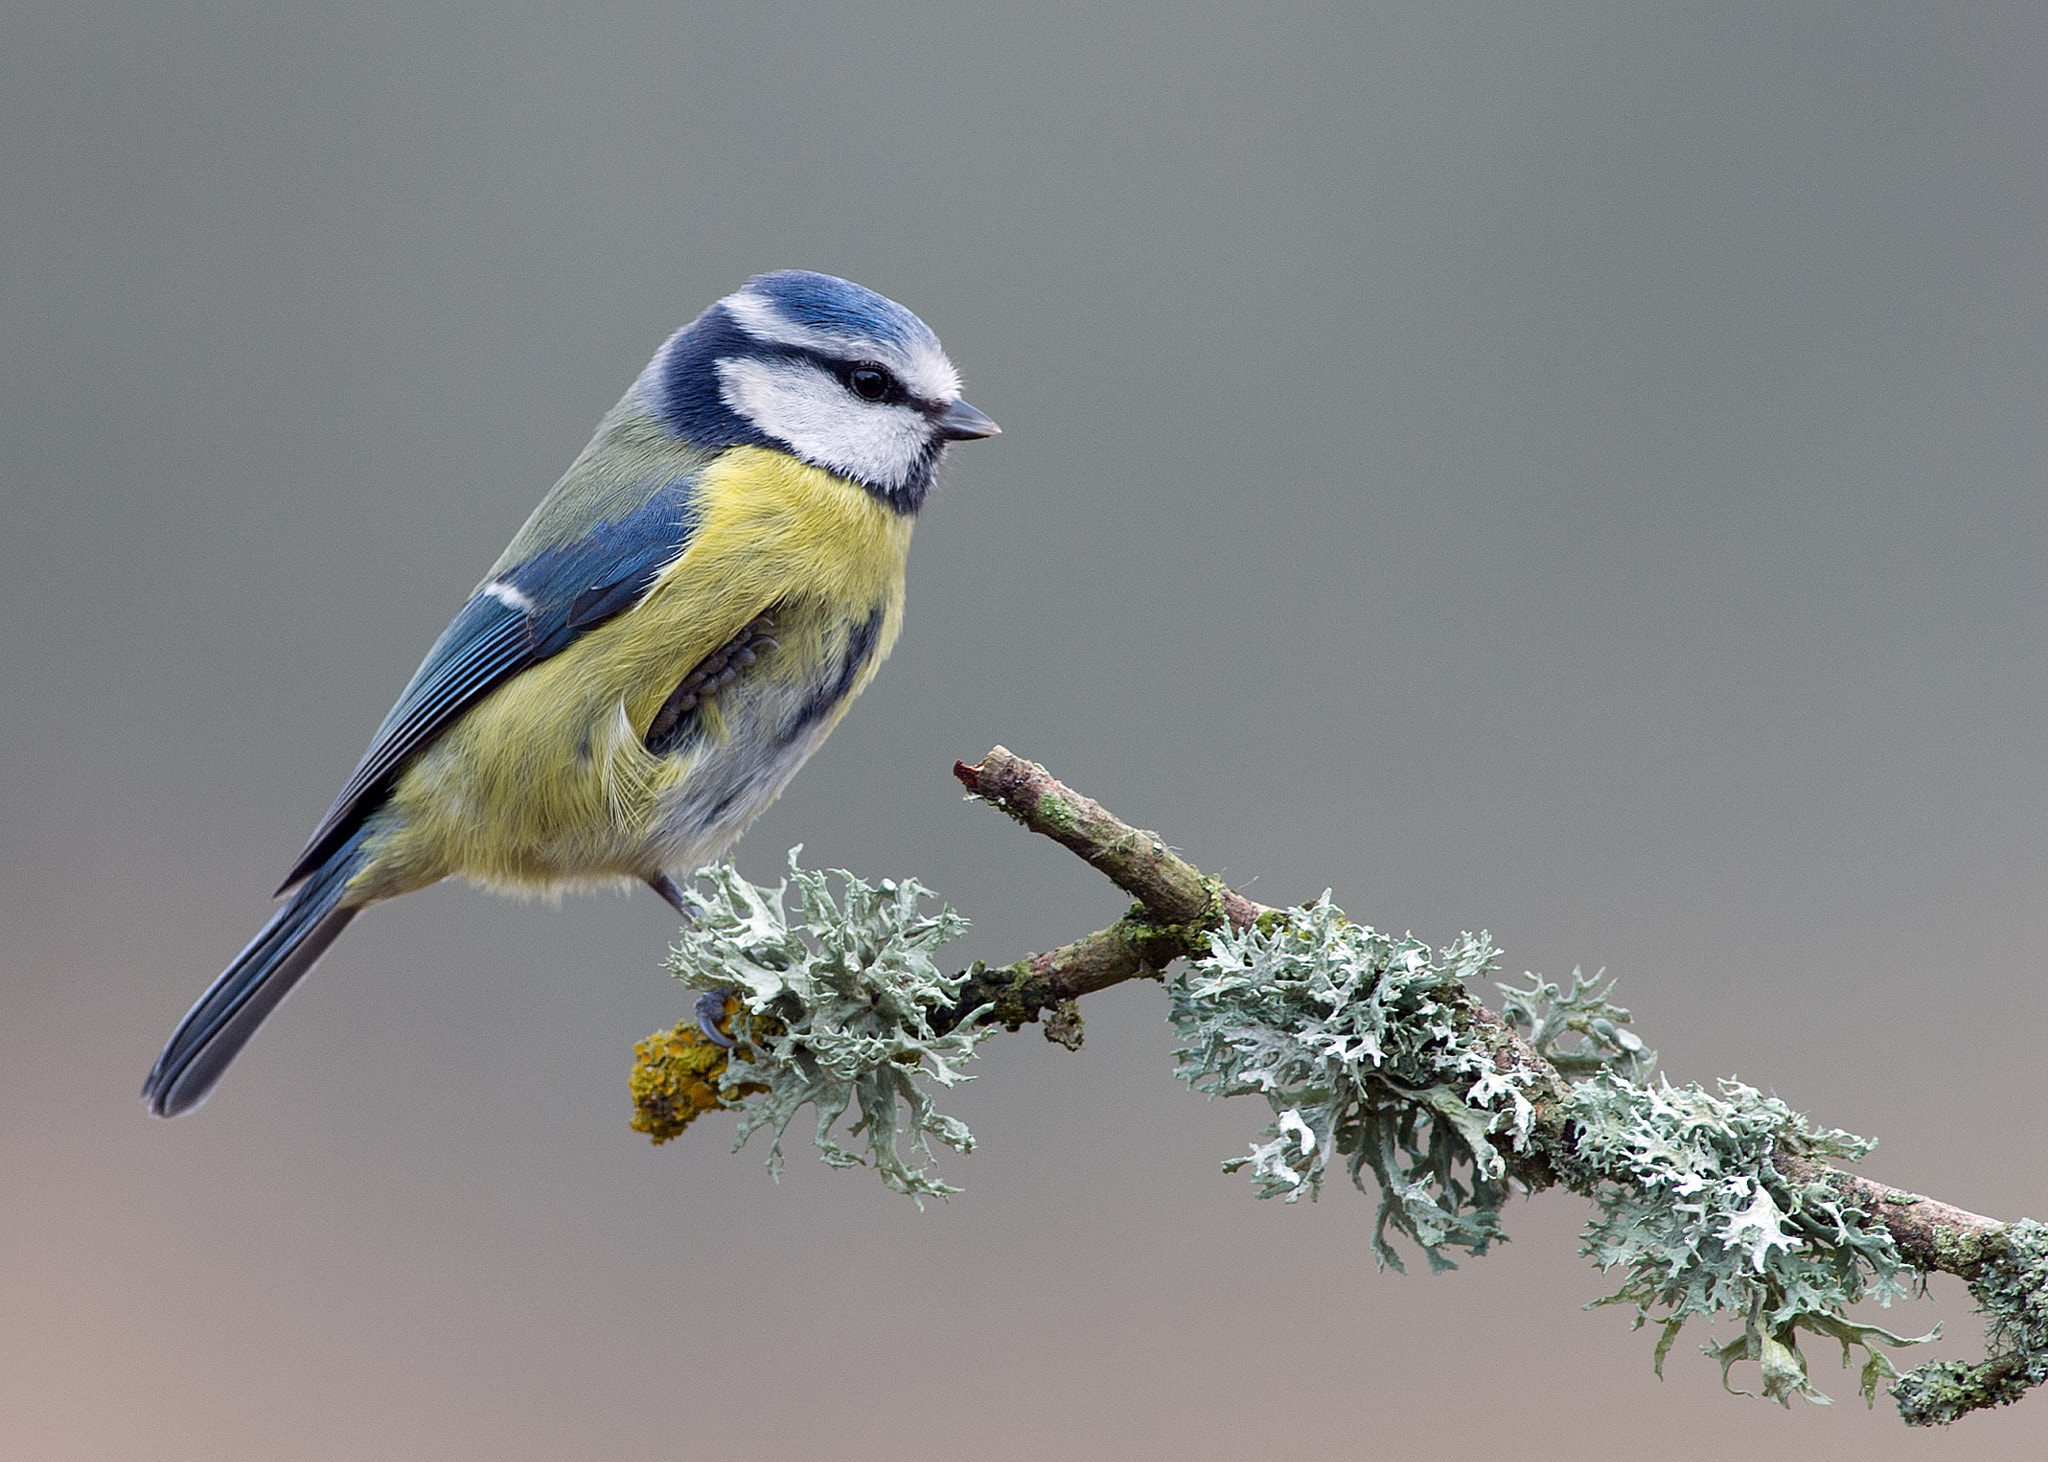 Photograph Blue Tit by Dean Mason on 500px